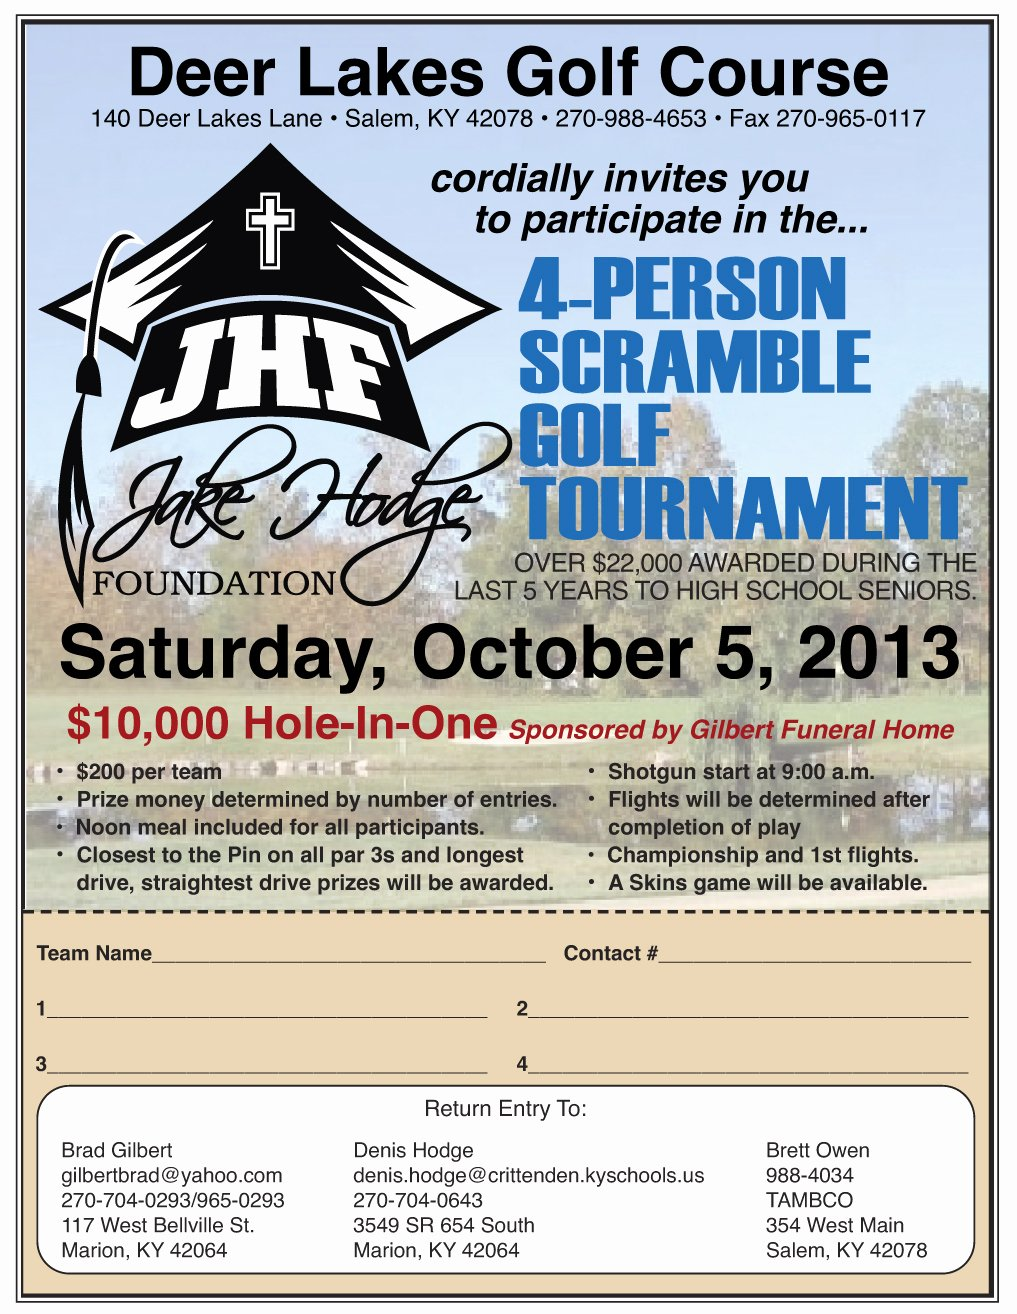 Golf Scramble Flyer Template Elegant Jake Hodge Memorial Foundation